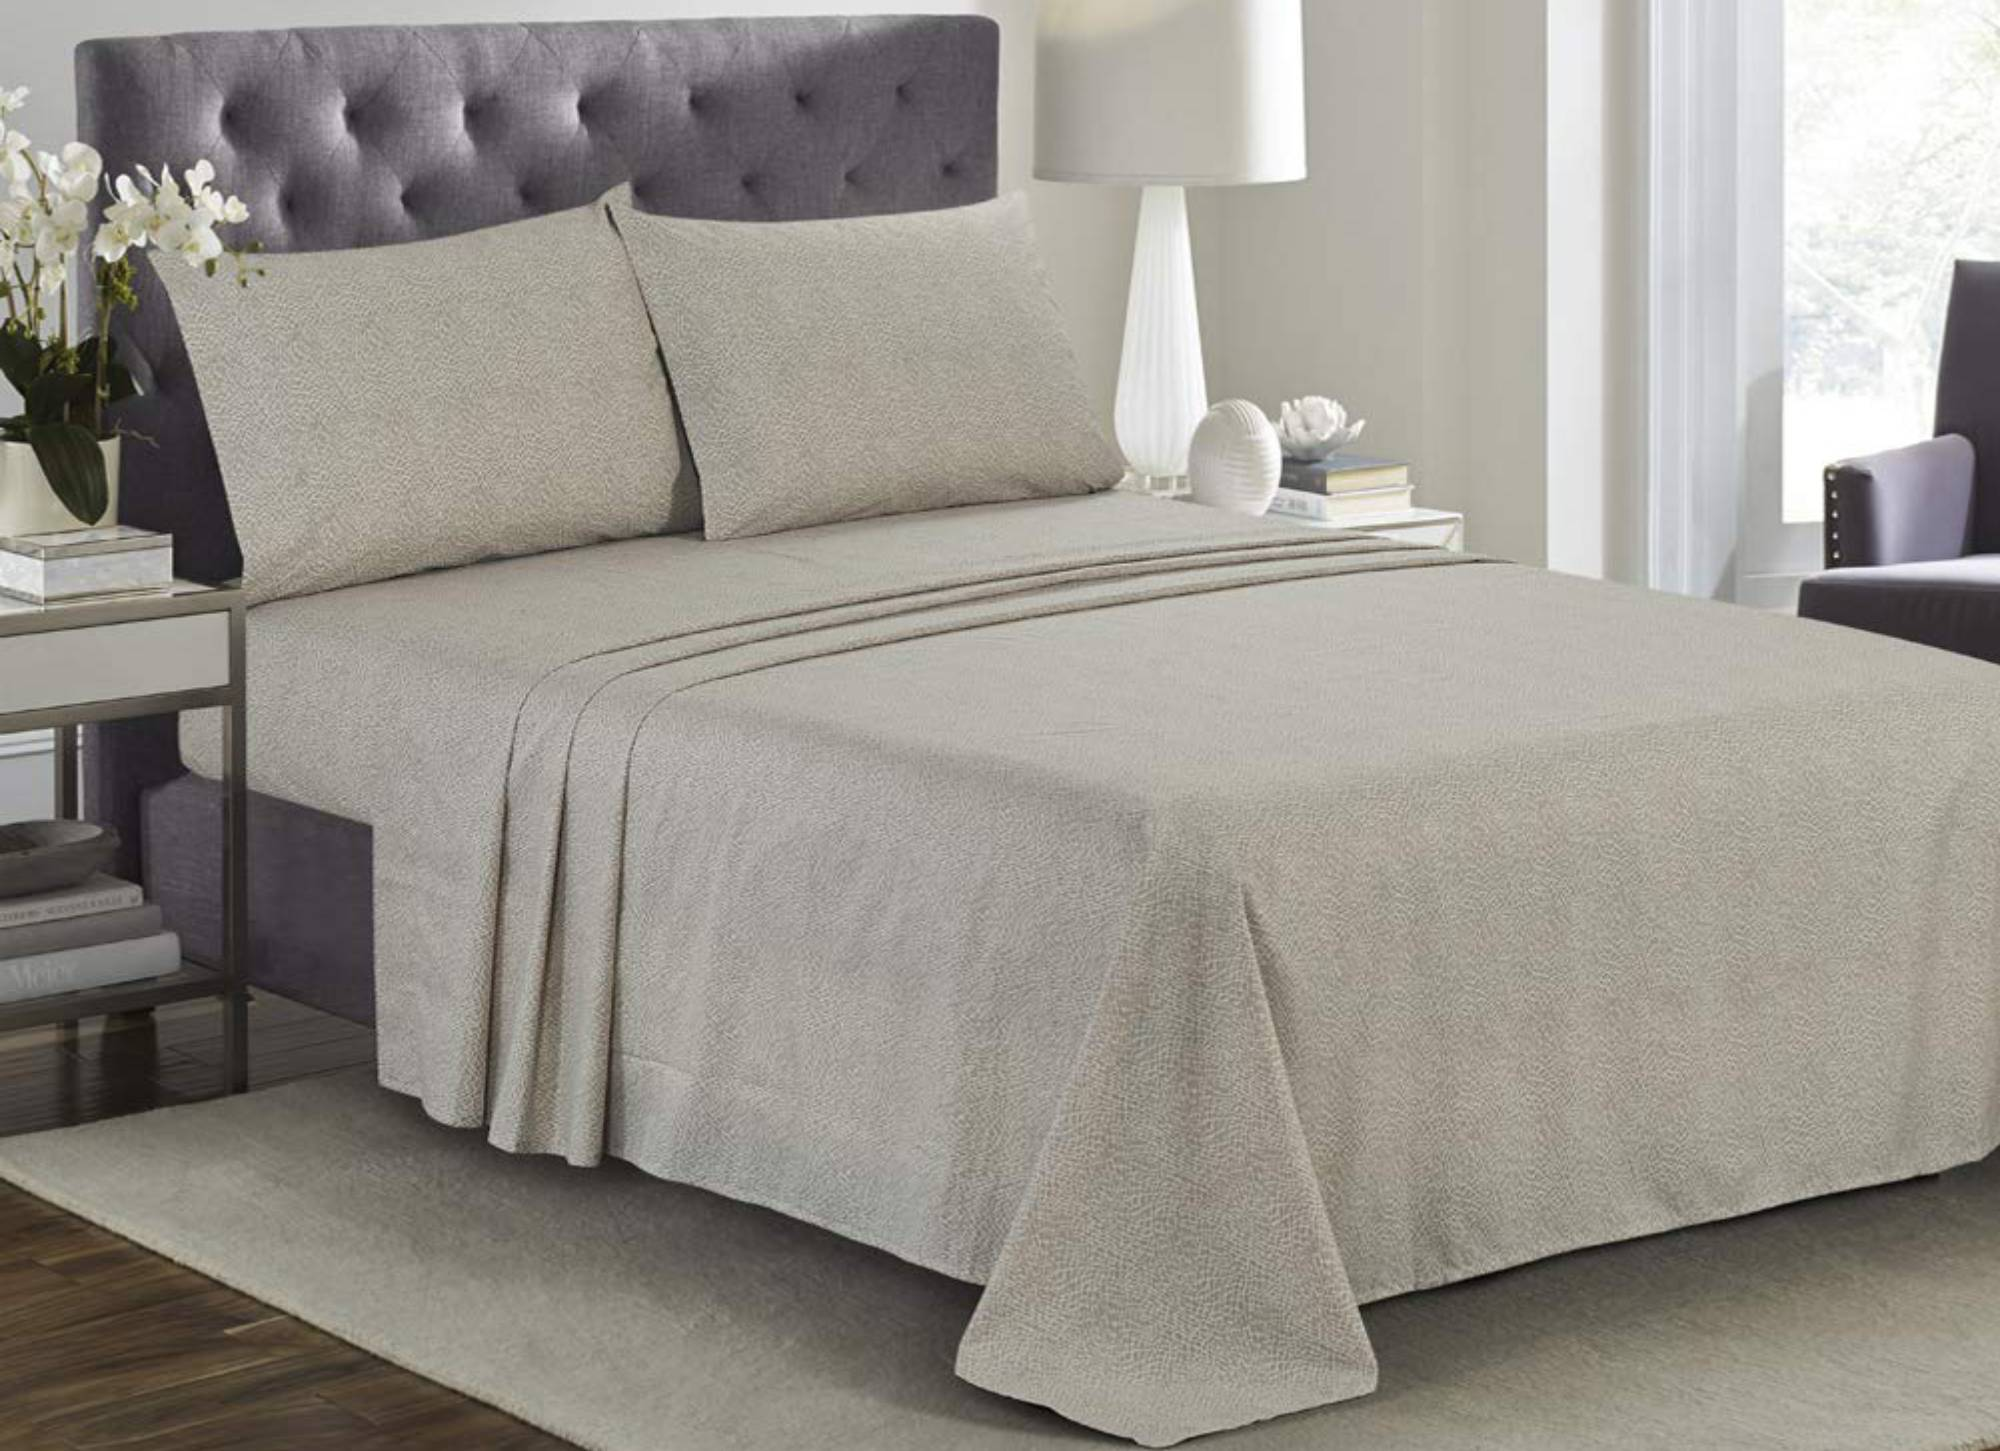 lovely percale beddings